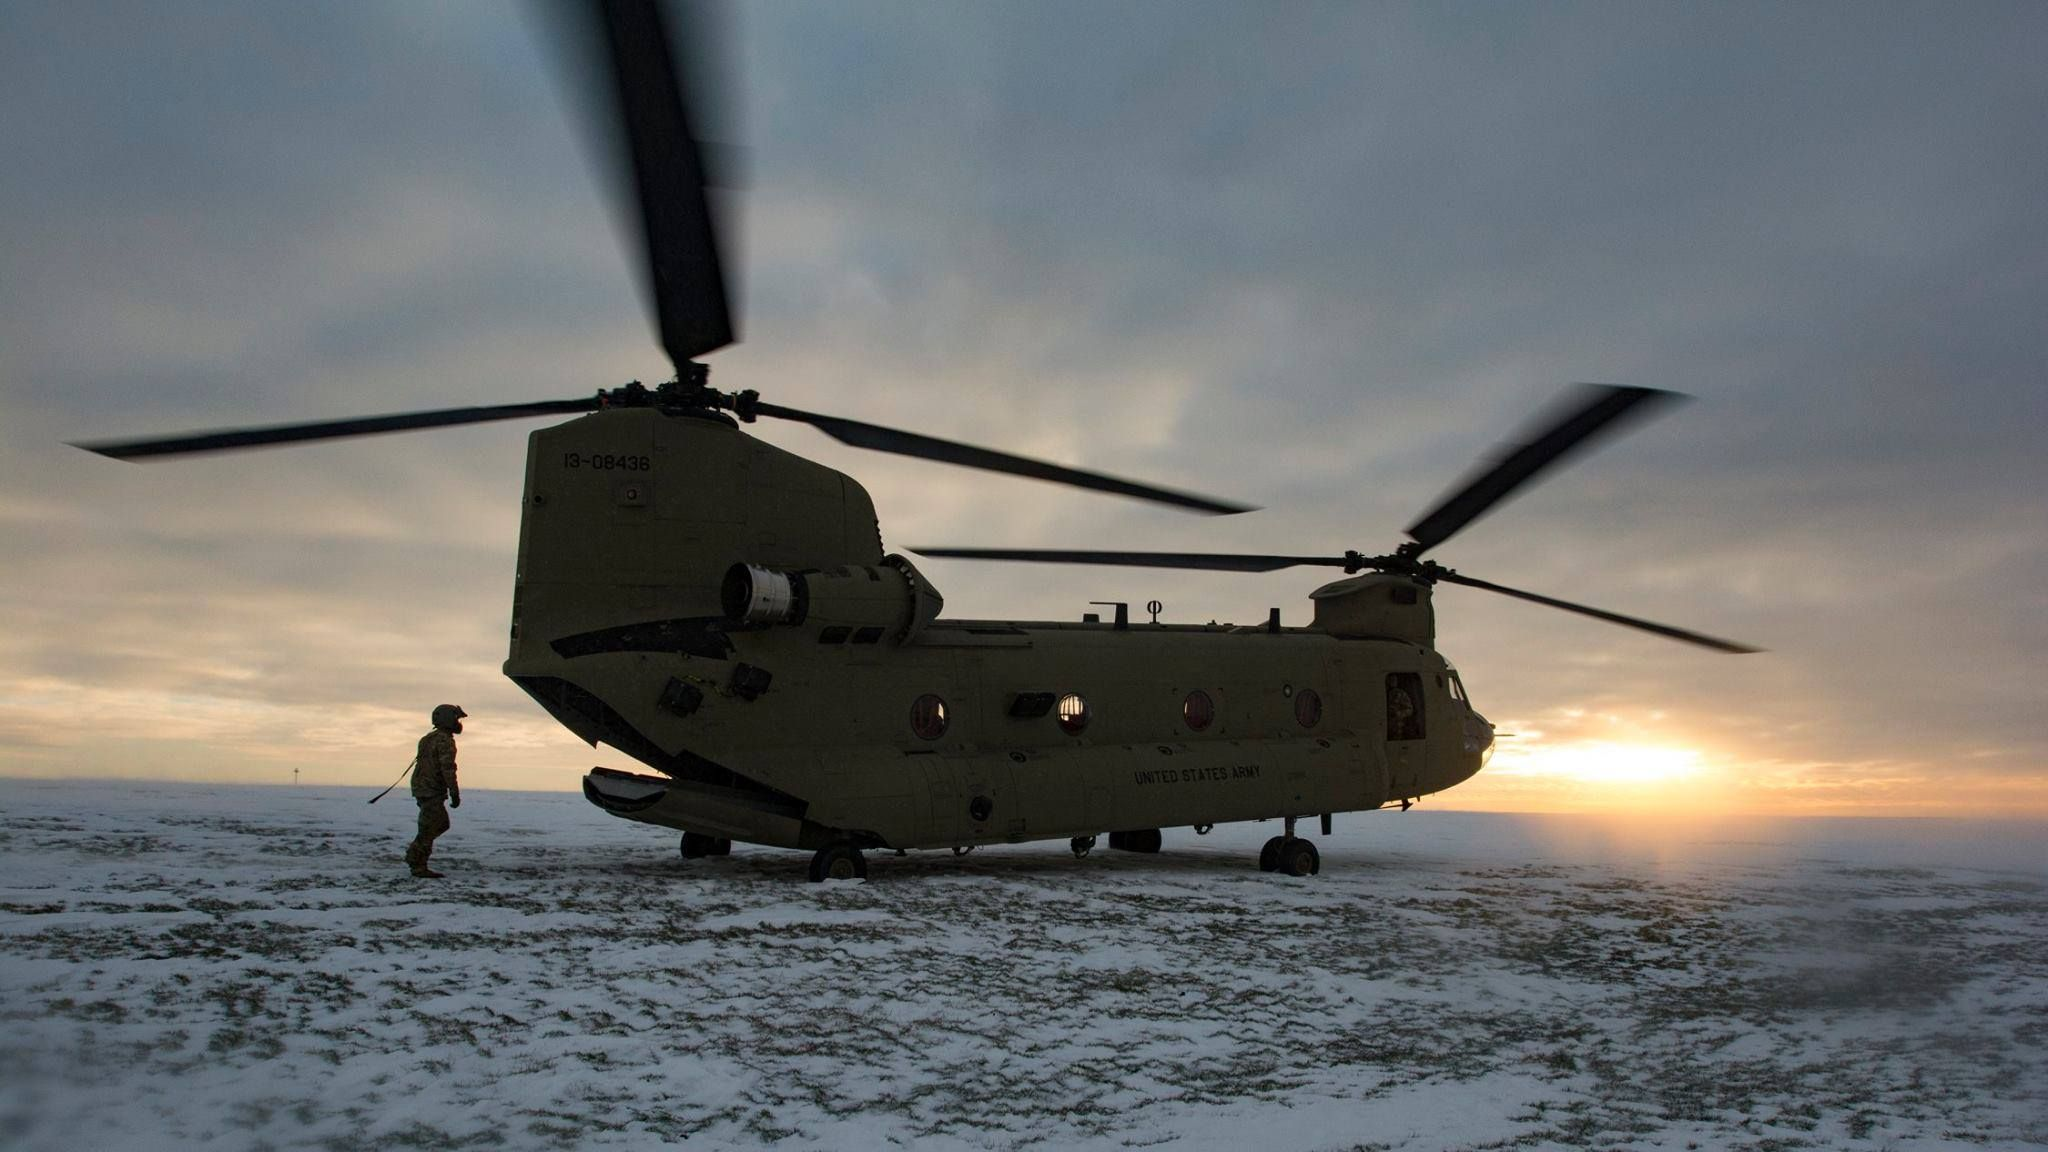 U S  Army CH-47 Chinook helicopter crew, assigned to the